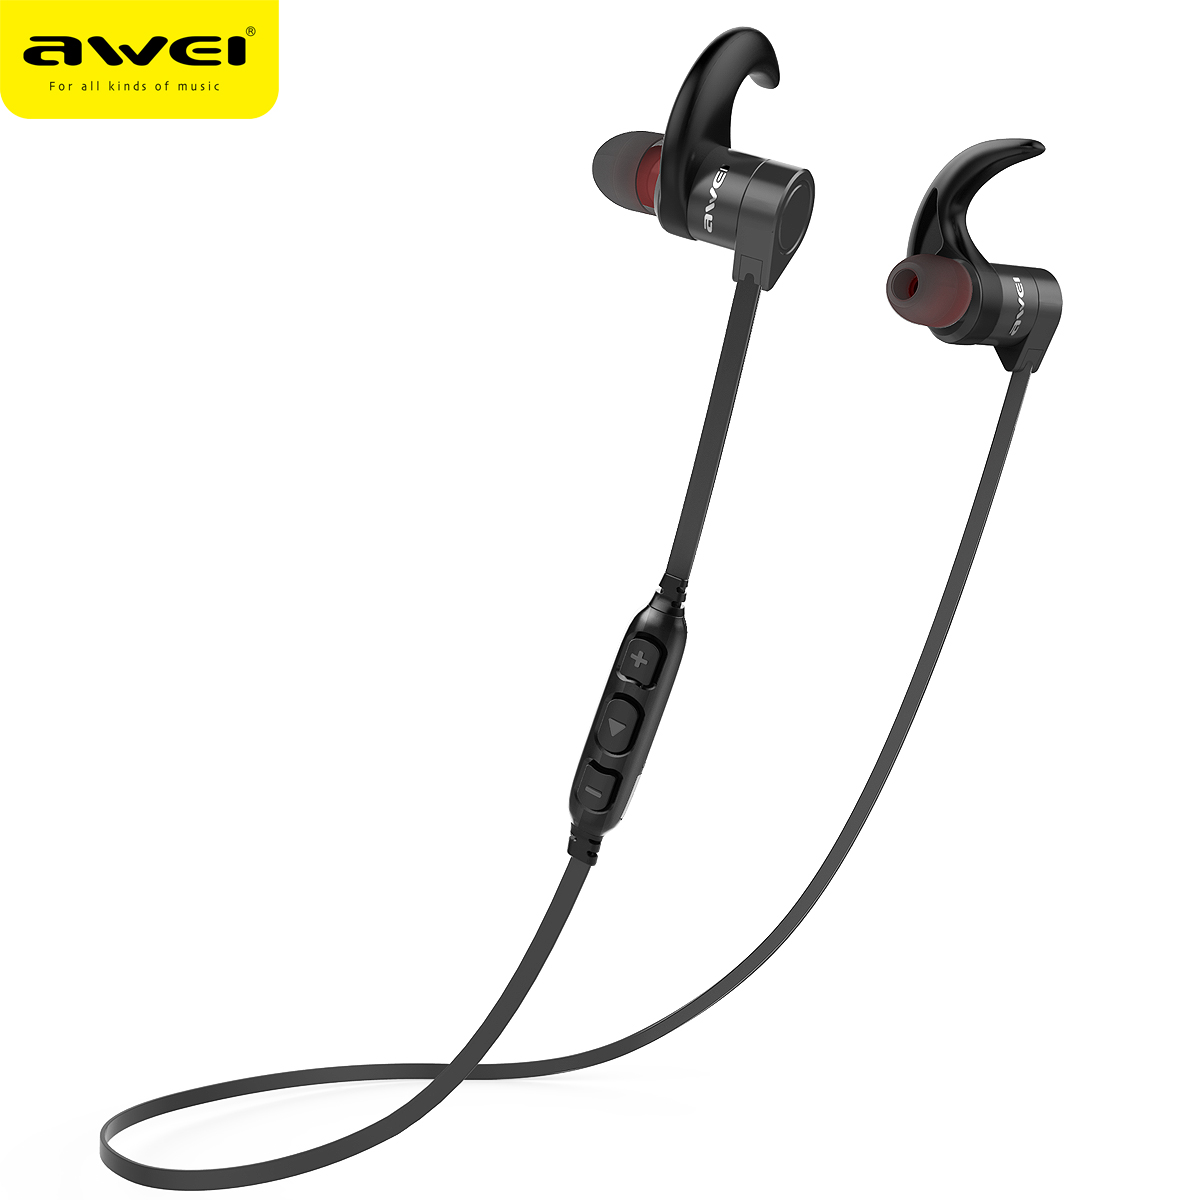 AWEI AK3 Bluetooth Earphone IPX4 Waterproof Wireless Headset Casque With Microphone Cordless Earphone Earpiece Audifonos Earbuds awei ak3 bluetooth earphone ipx4 waterproof wireless headset casque with microphone cordless earphone earpiece audifonos earbuds